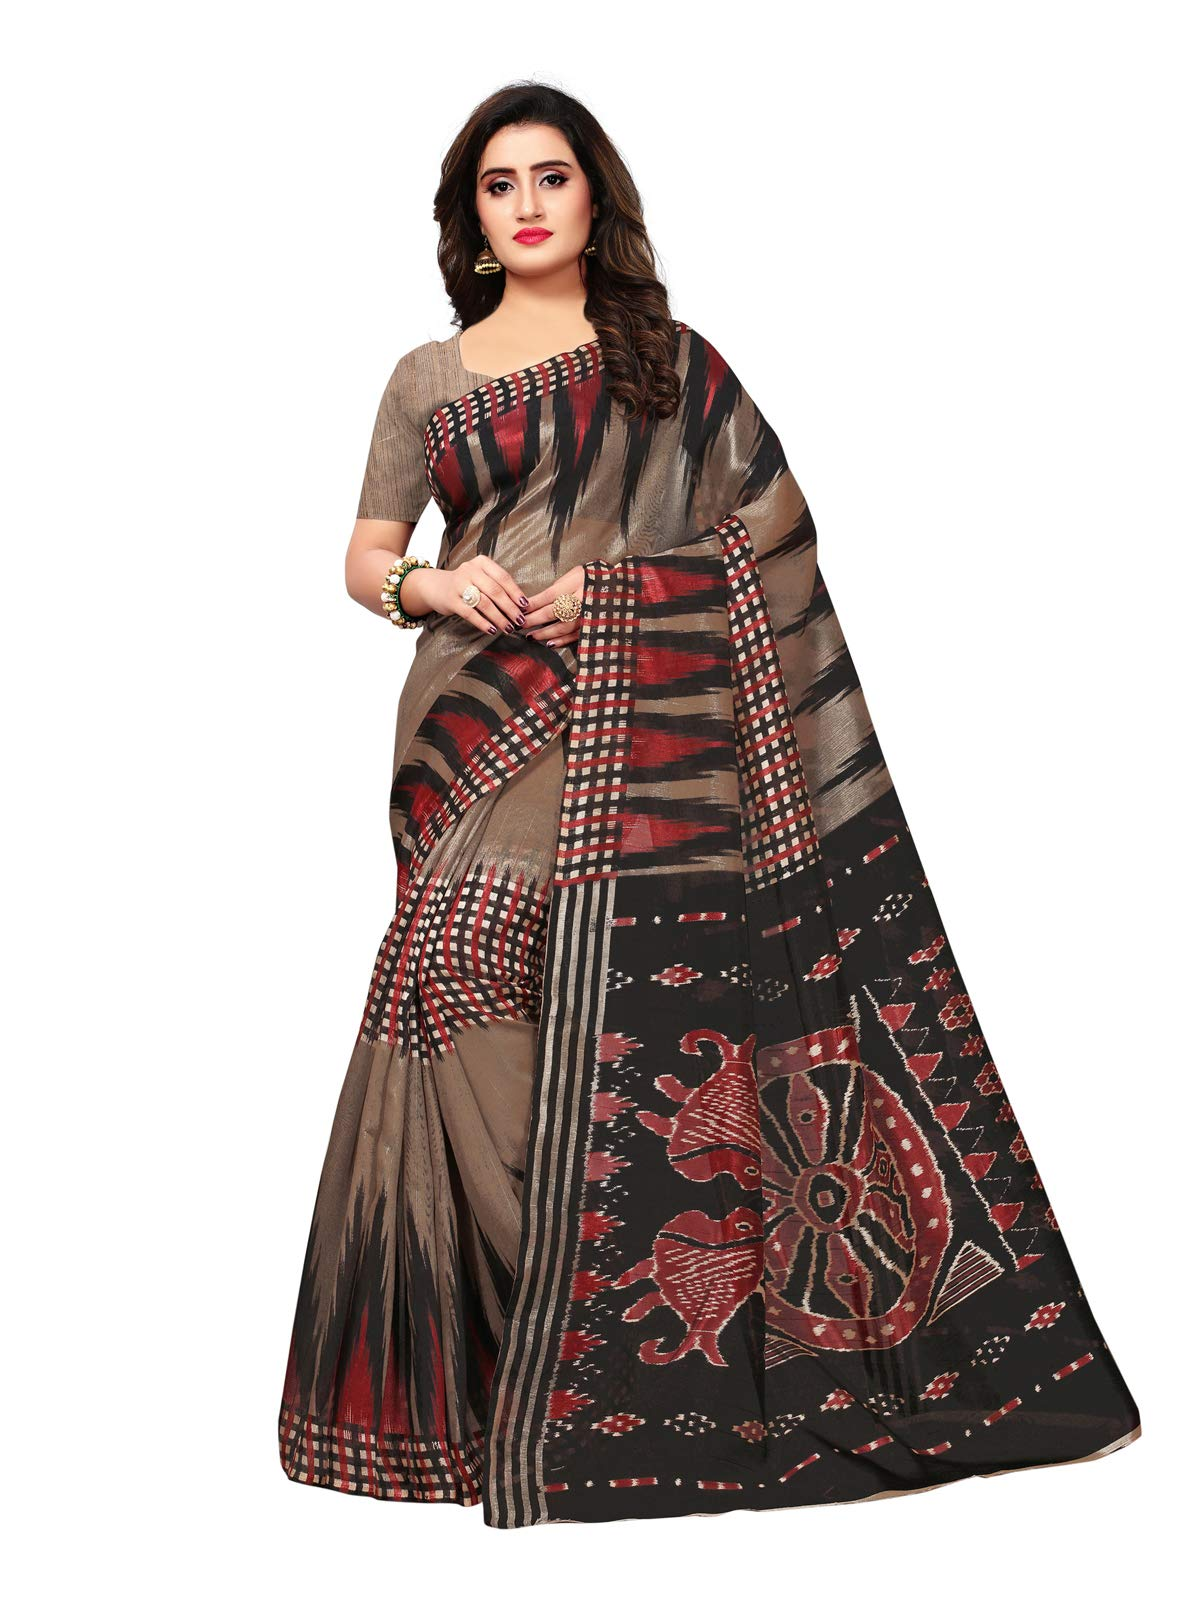 Kanchnar Women's Bhagalpuri Silk Printed Saree with Blouse